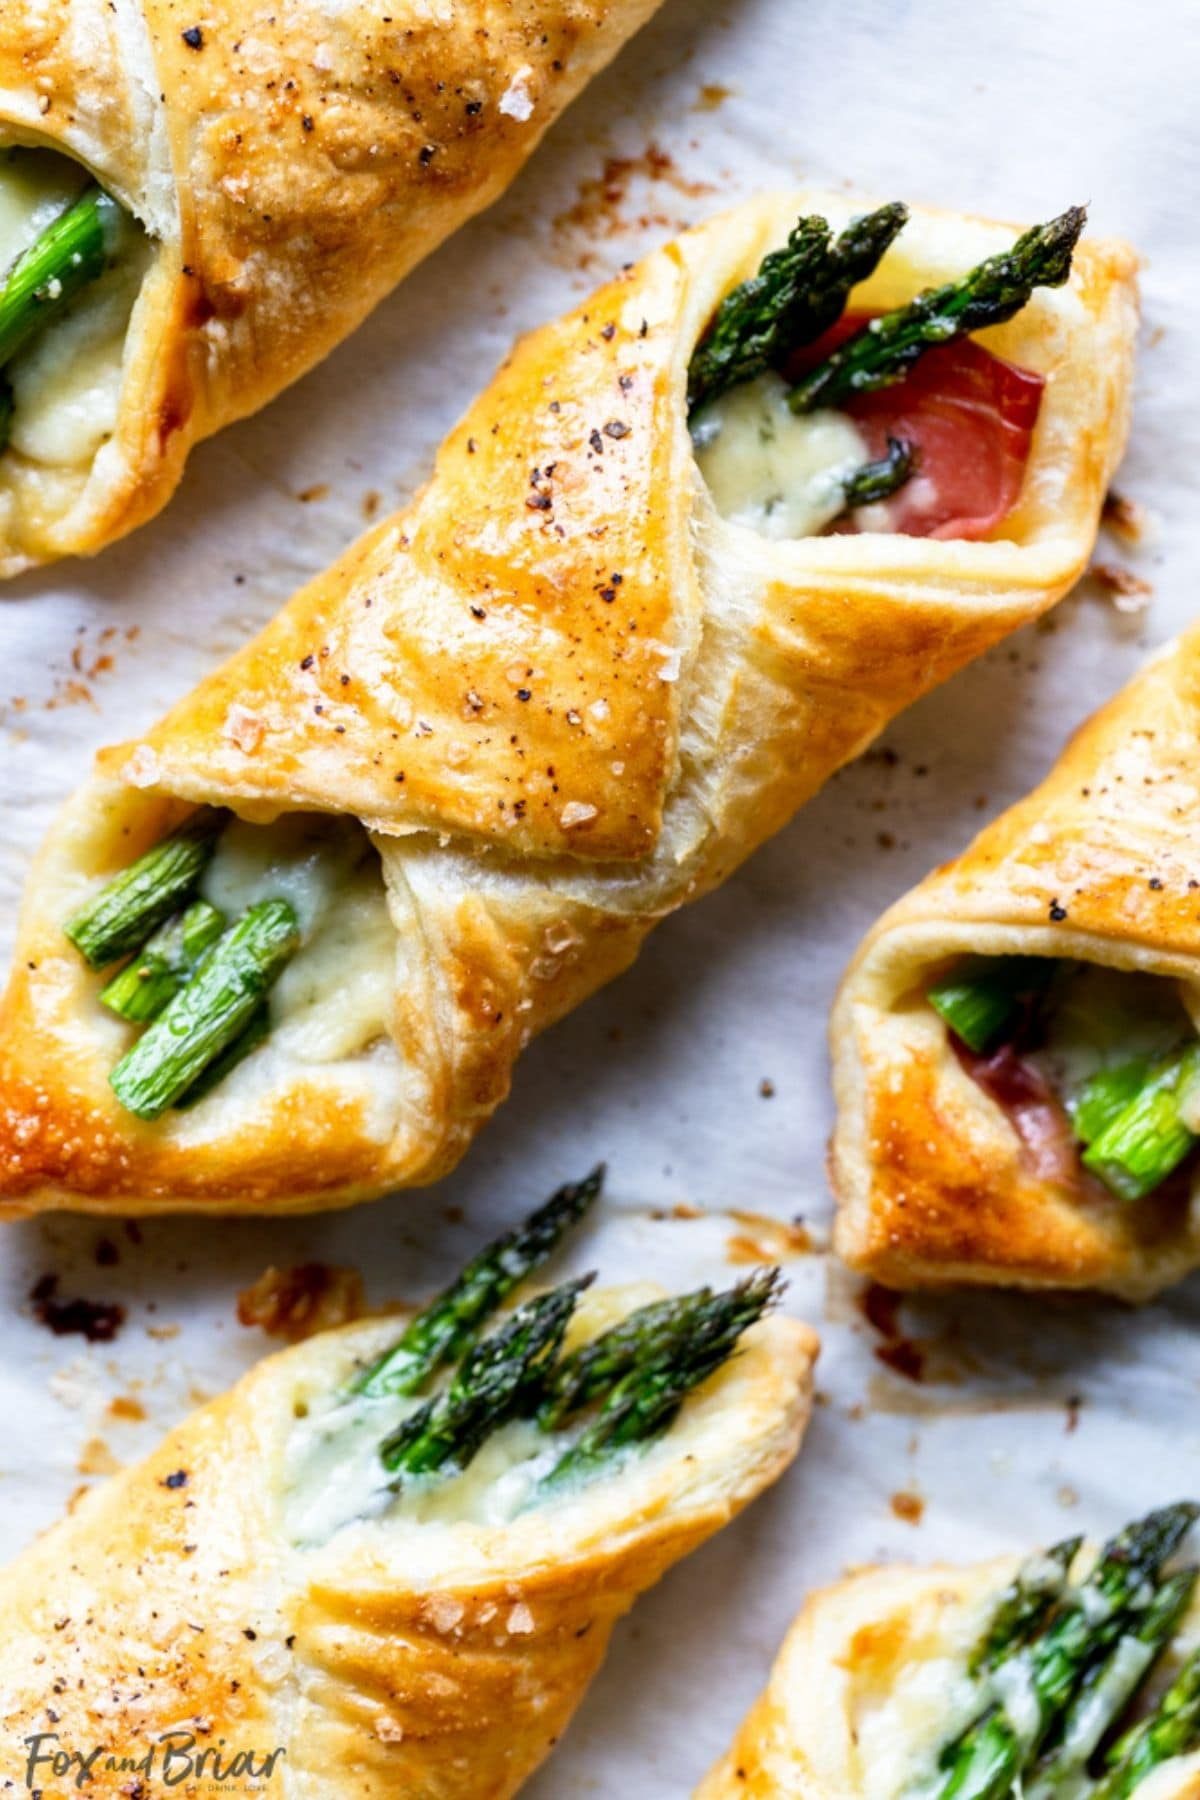 Pastry bundles filled with creamy sauce and asparagus